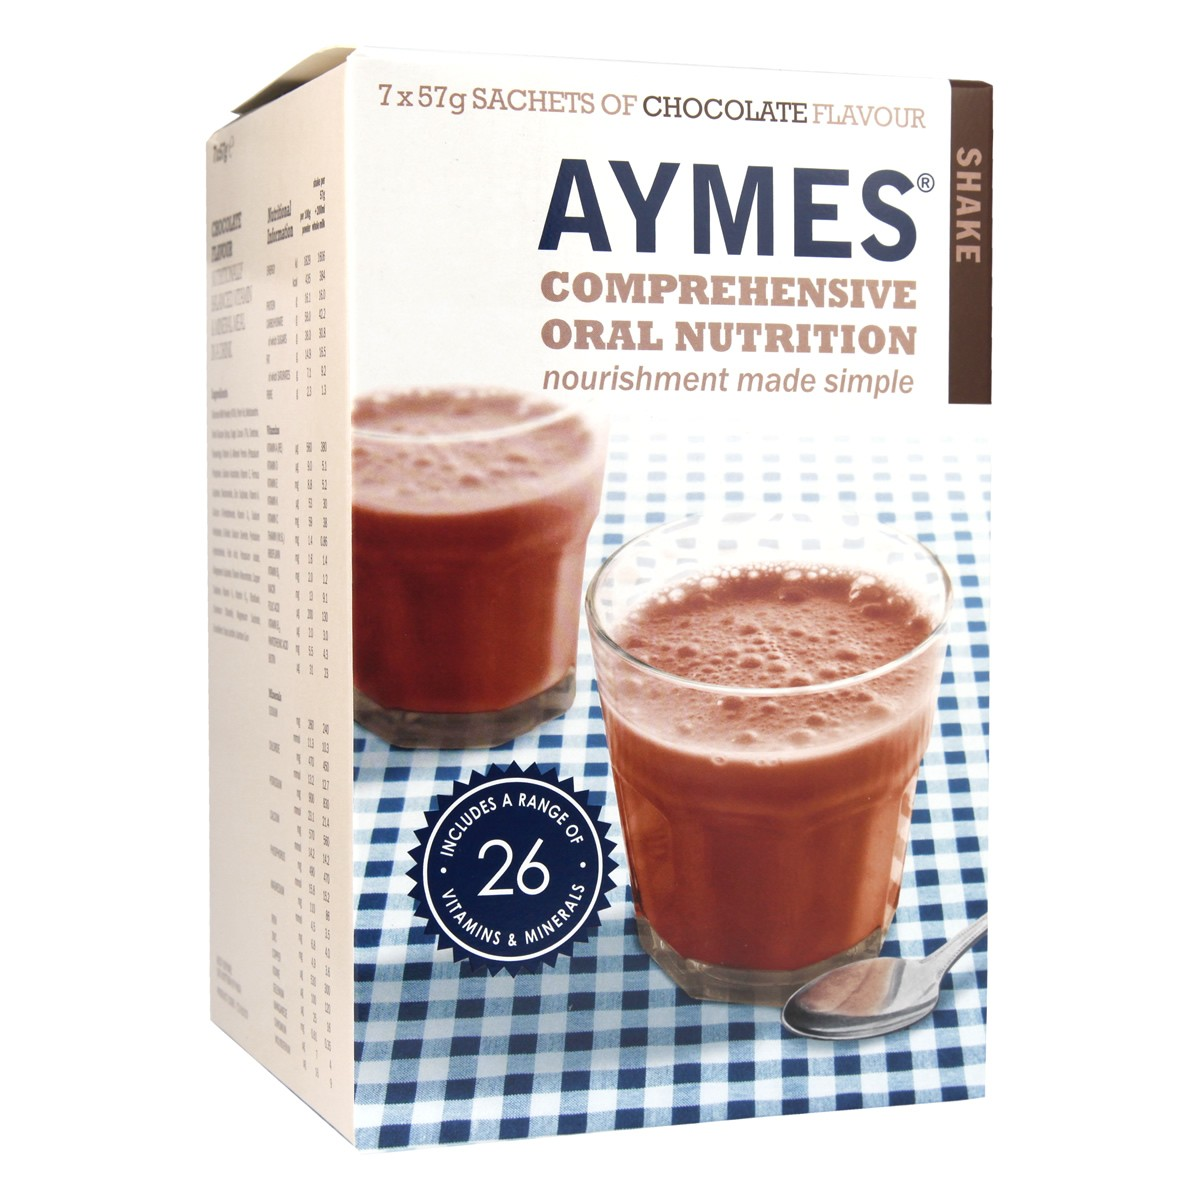 Aymes Comprehensive Oral Nutrition Shake - Chocolate Flavour